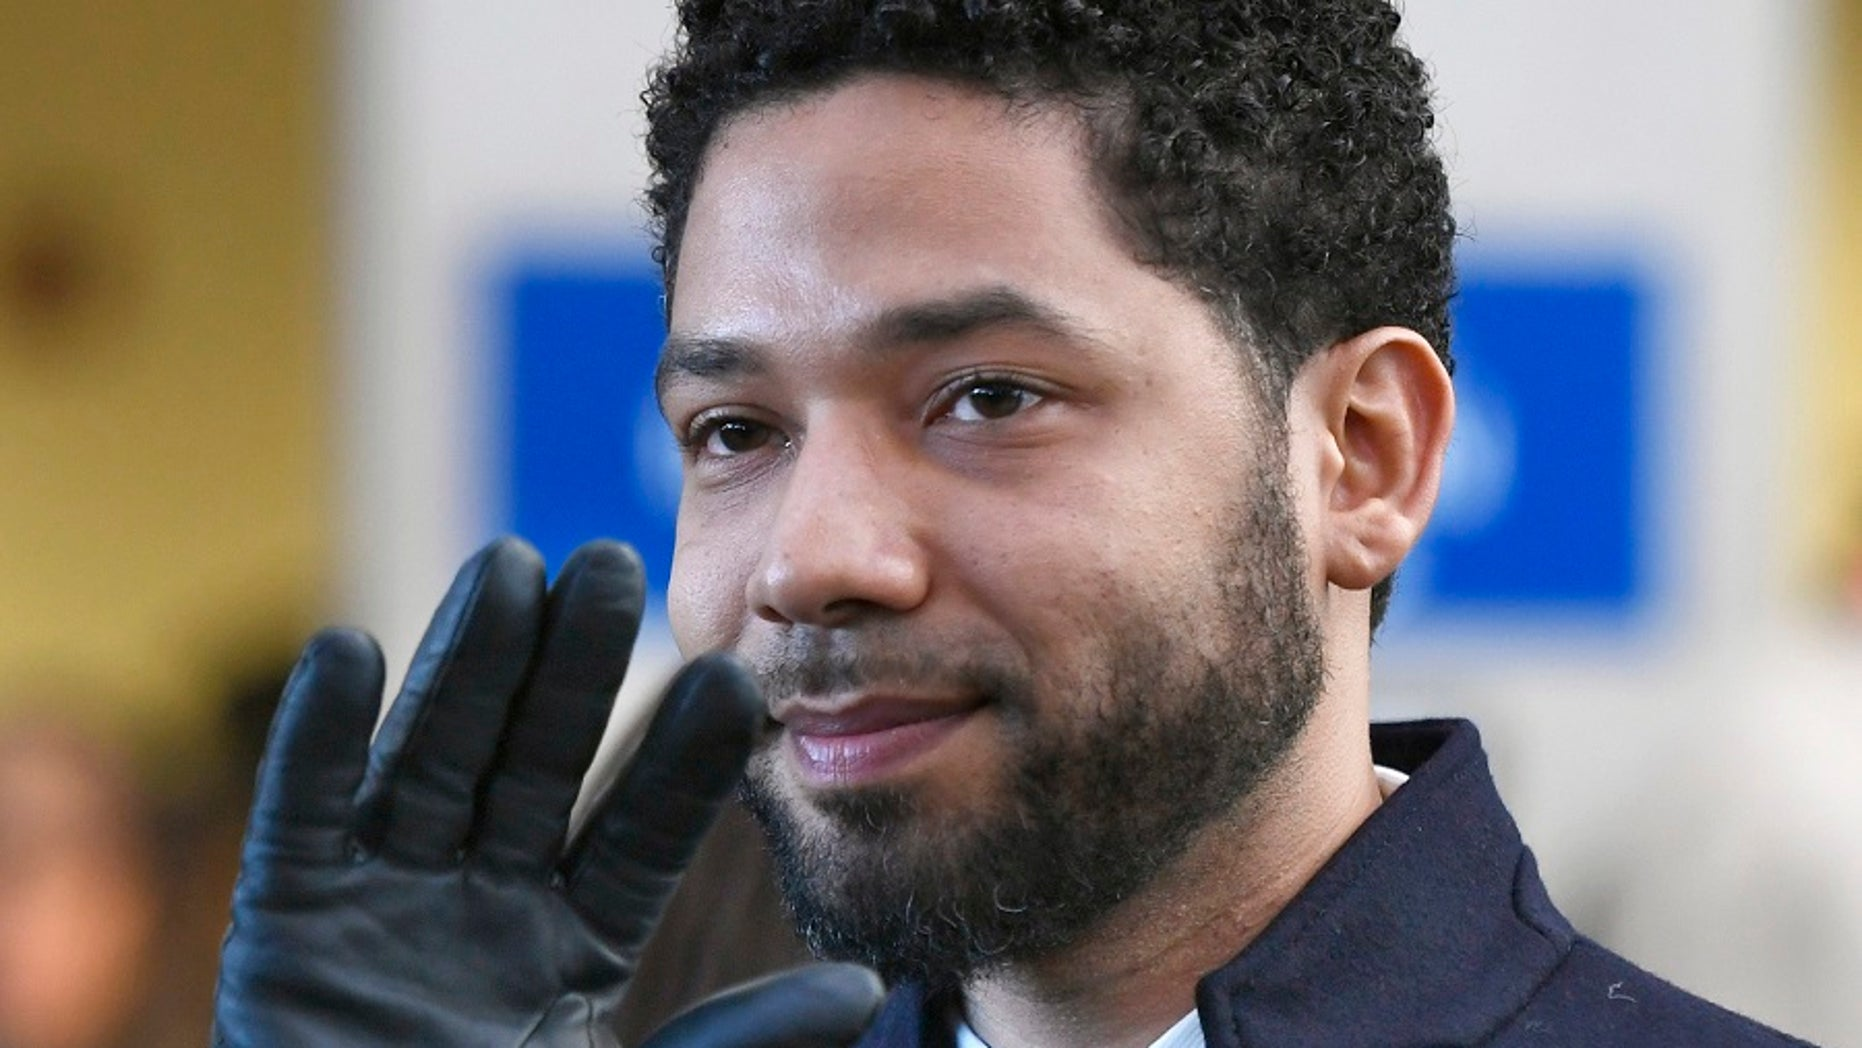 Actor Jussie Smollett smiles and waves to supporters before withdrawal Cook County (Ill.) Court after his charges were forsaken in Chicago. (Associated Press)